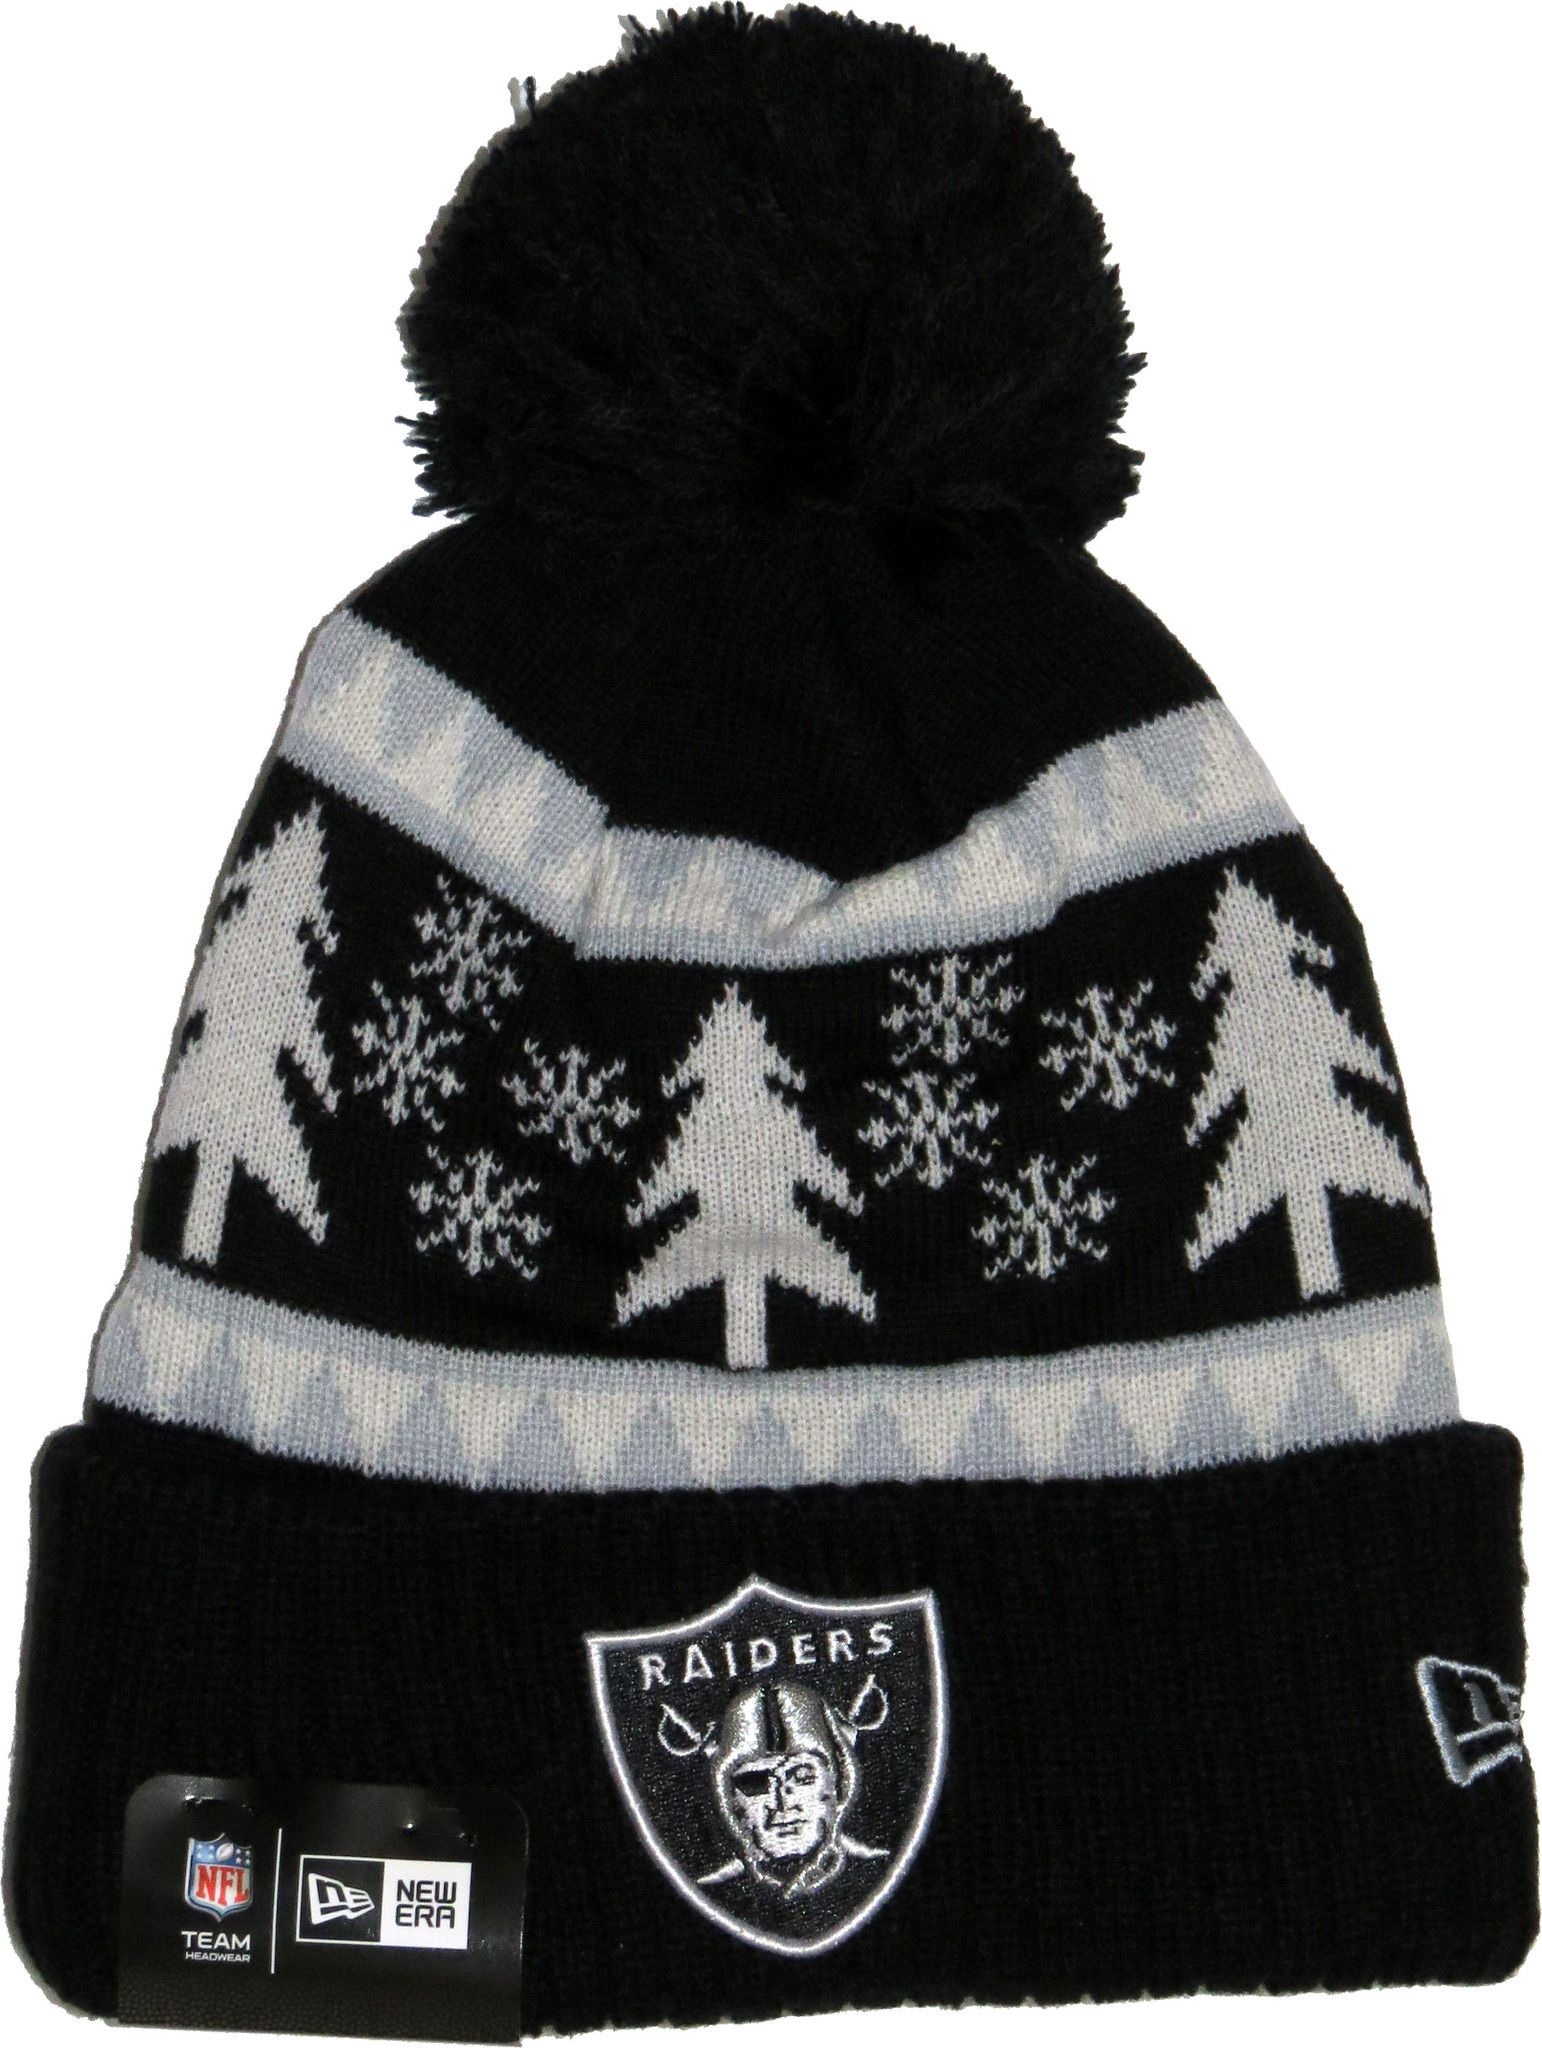 492b8303ec2 Oakland Raiders New Era NFL Team Snow Pine Bobble Hat